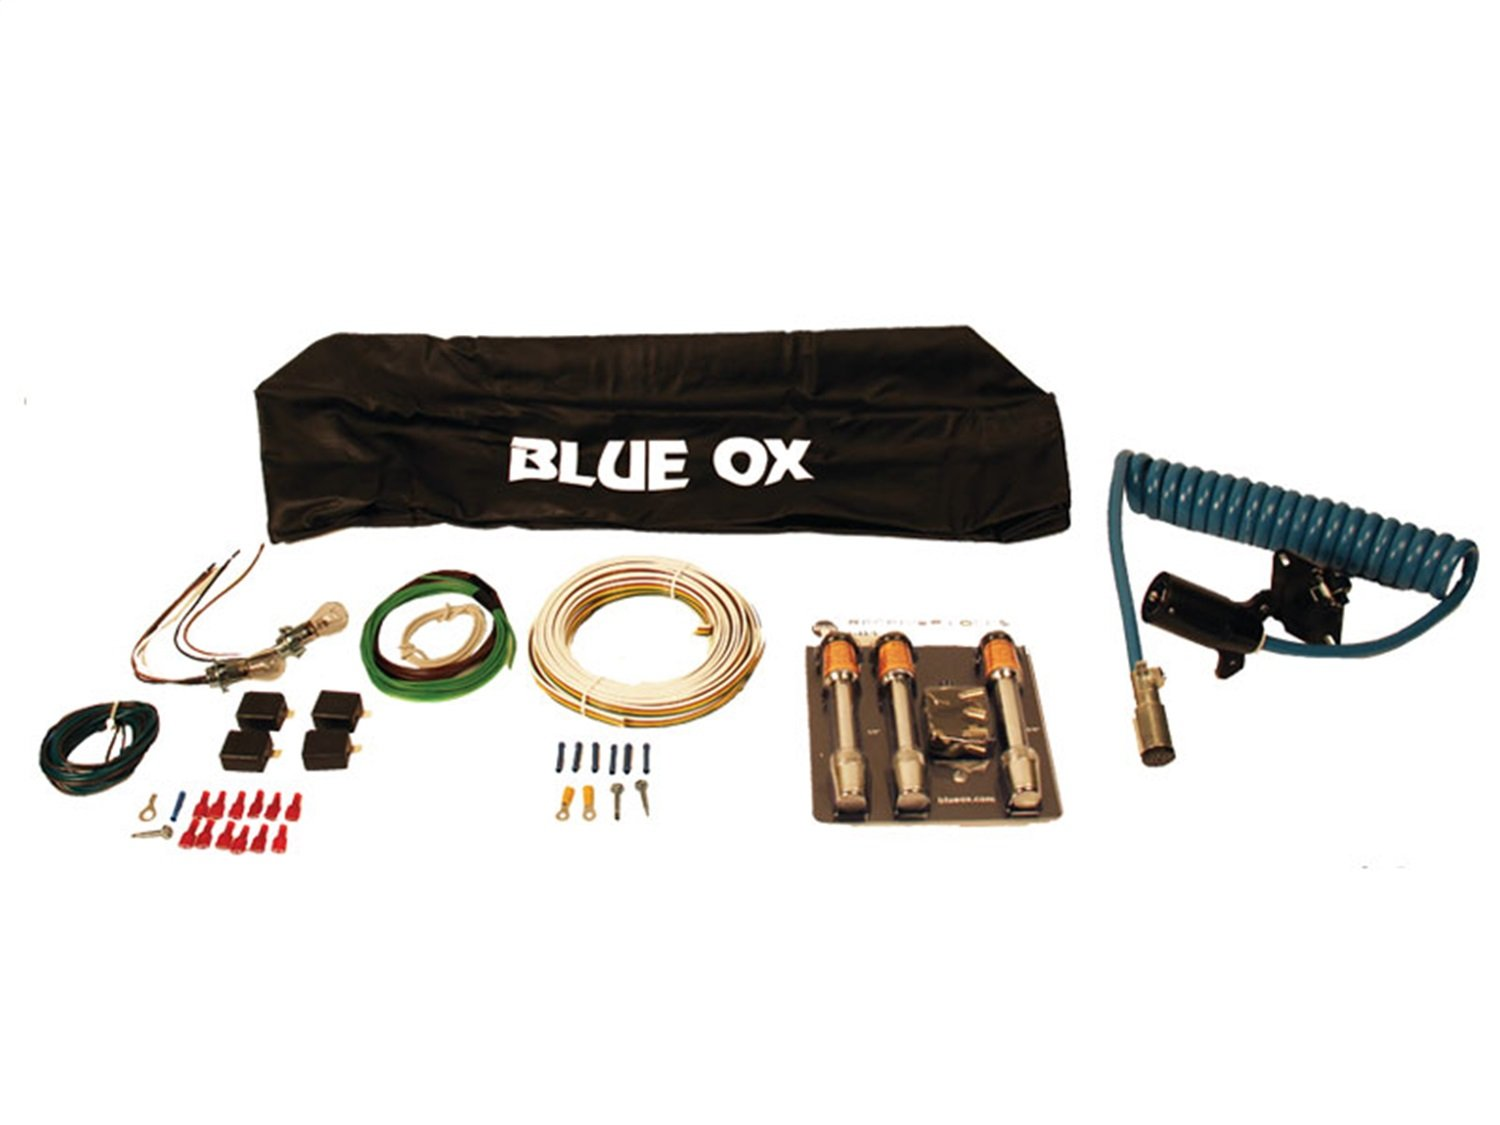 Blue Ox Bx88231 Aventa Lx Towing Accessory Kit Automotive Roadmaster Tail Light Wiring For Towed Vehicles Led Bulb And